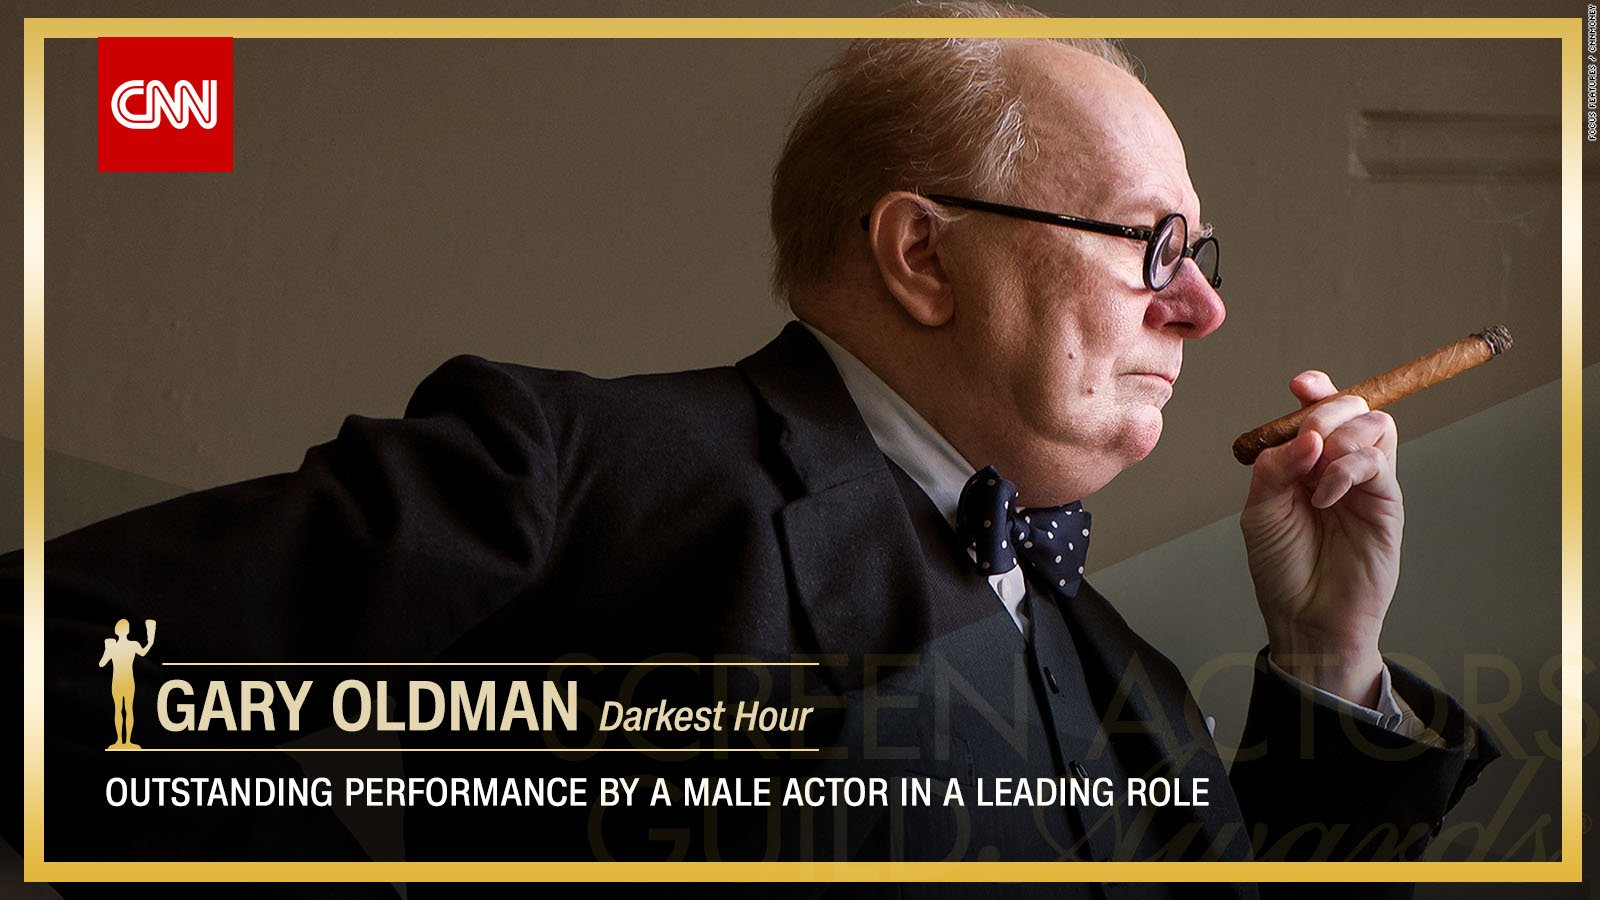 Gary Oldman wins Outstanding Performance by a Male Actor in a Leading Role. https://t.co/cPly9Wzl8b #SAGAwards https://t.co/ixoZxgSplC